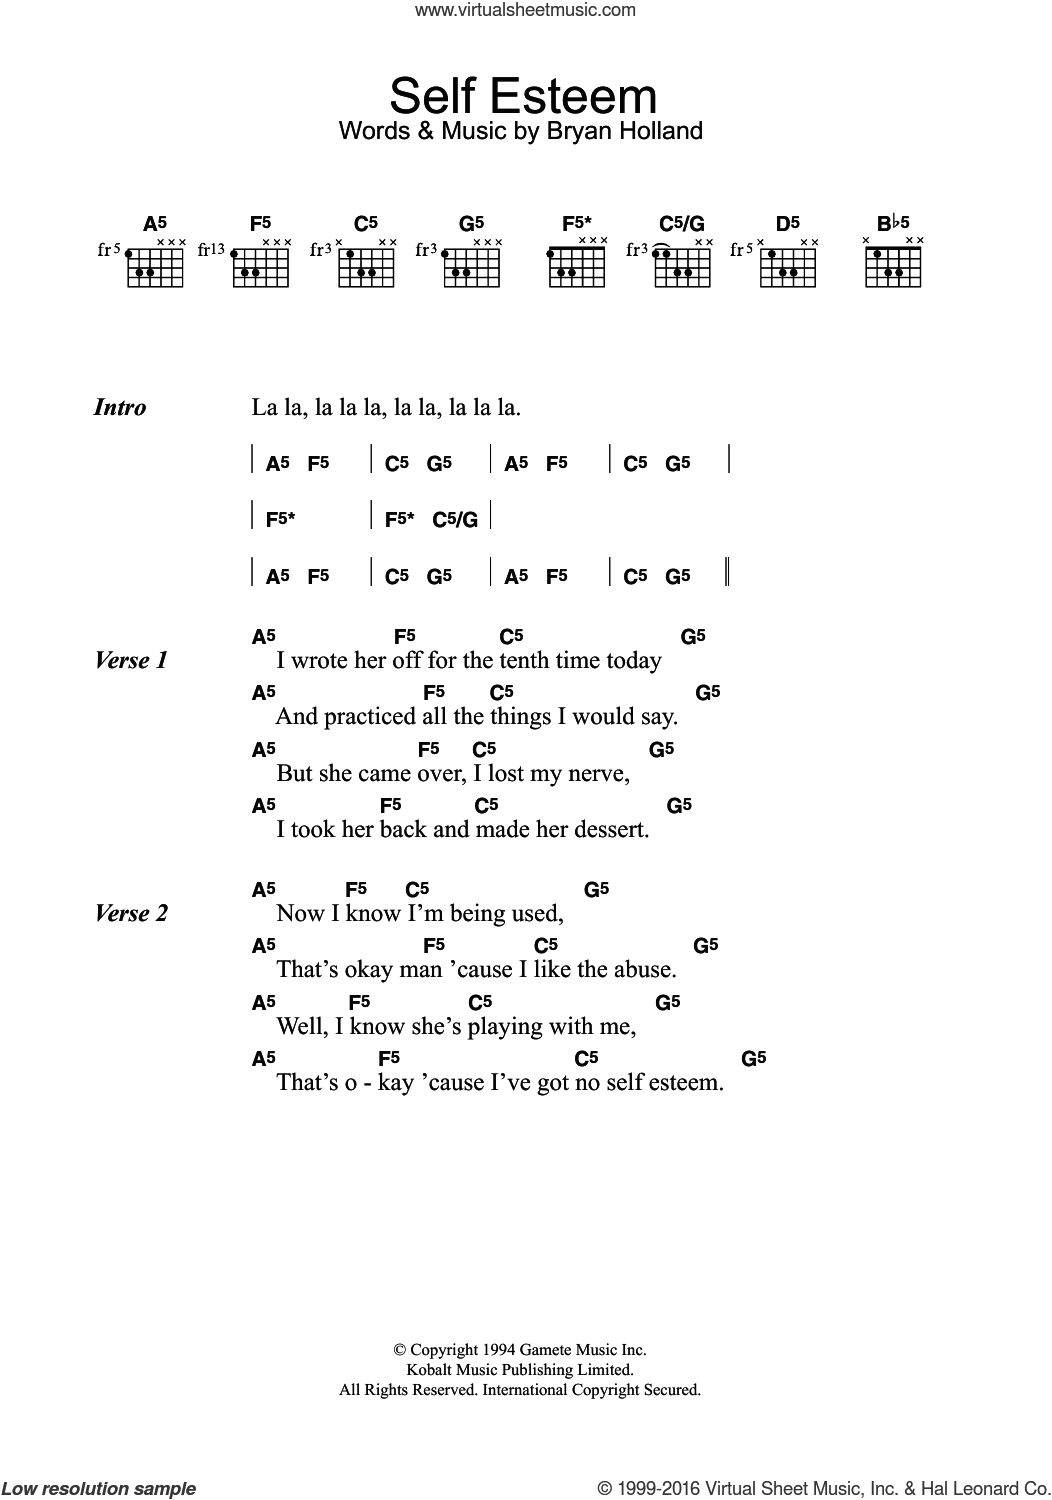 Self Esteem sheet music for guitar (chords) by The Offspring and Bryan Holland, intermediate skill level